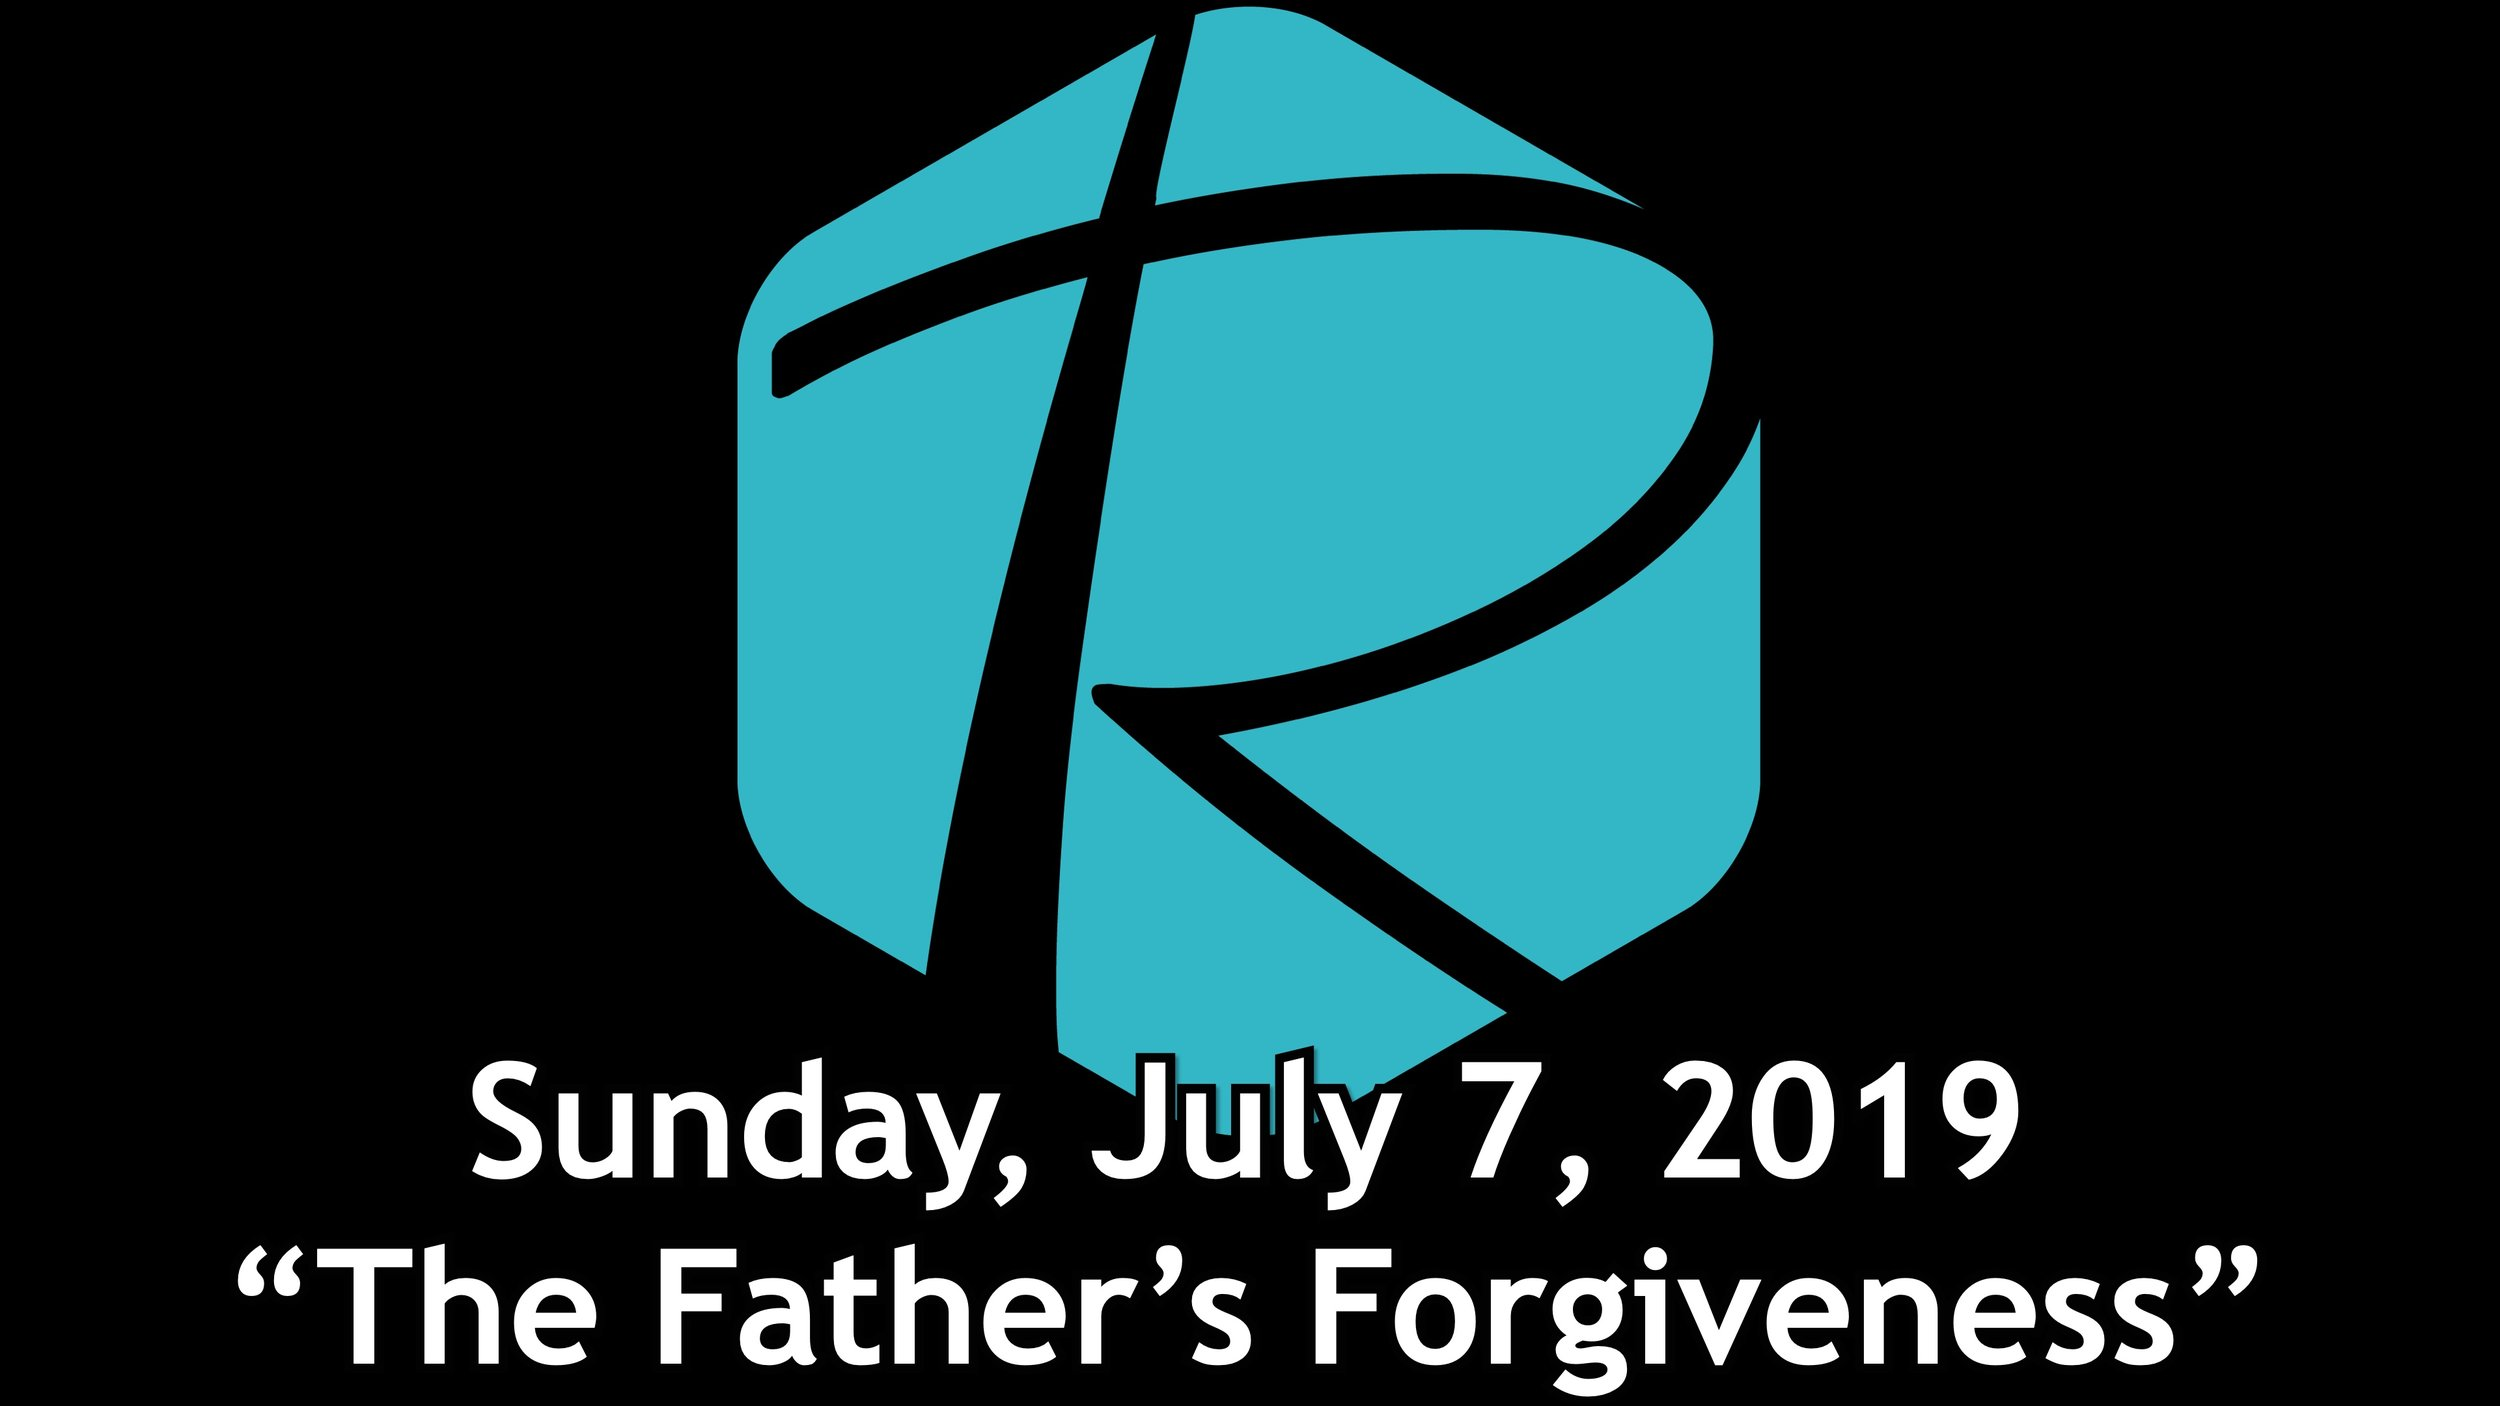 7-7-2019 The Father's Forgiveness.jpg